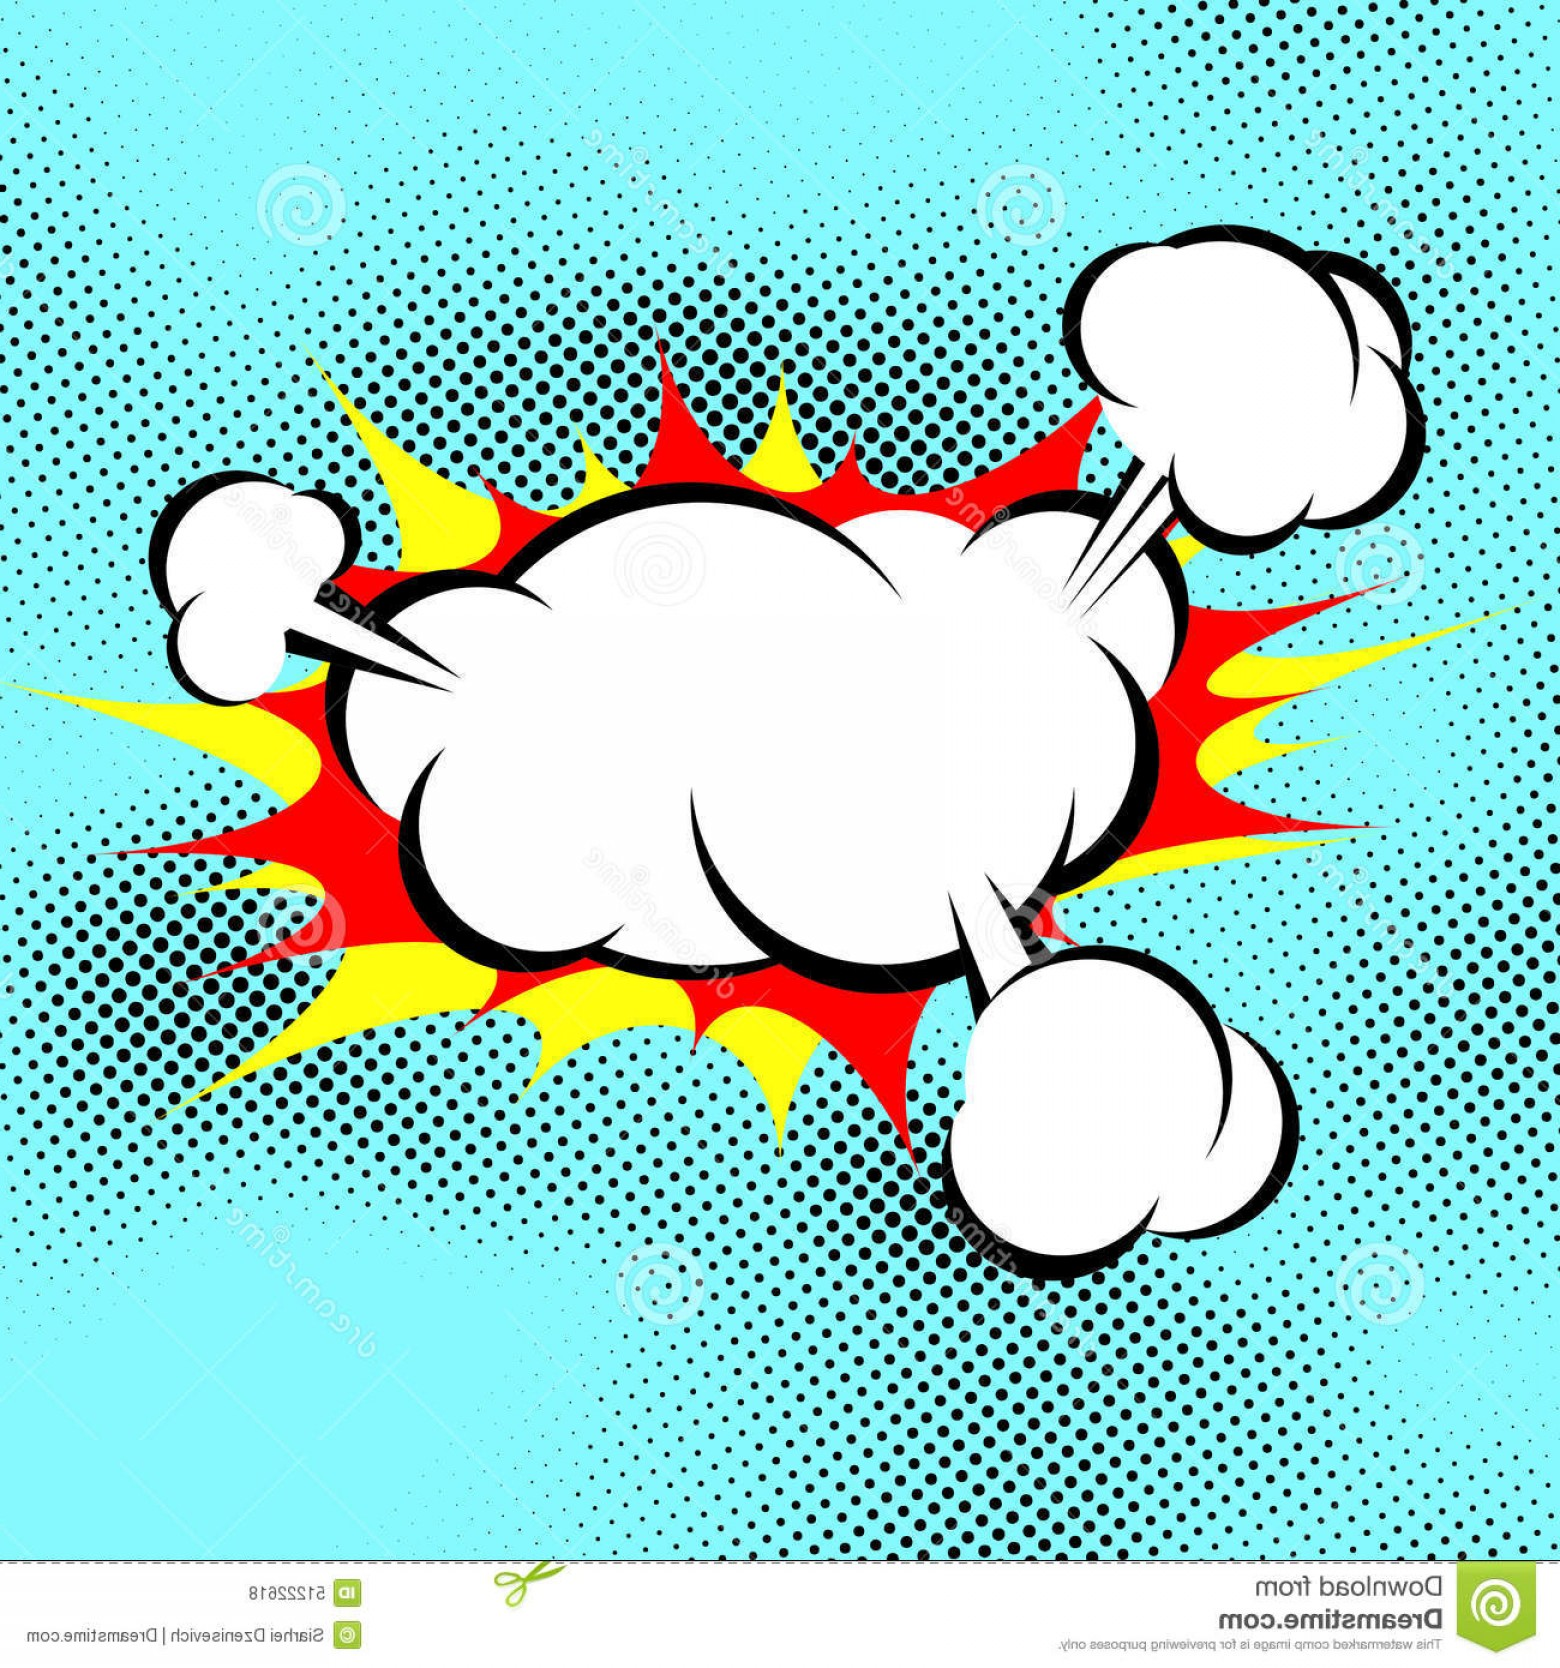 Comic Book Vector Graphics: Stock Illustration Pop Art Explosion Boom Cloud Comic Book Background Over Dotted Blue Vector Illustration Image